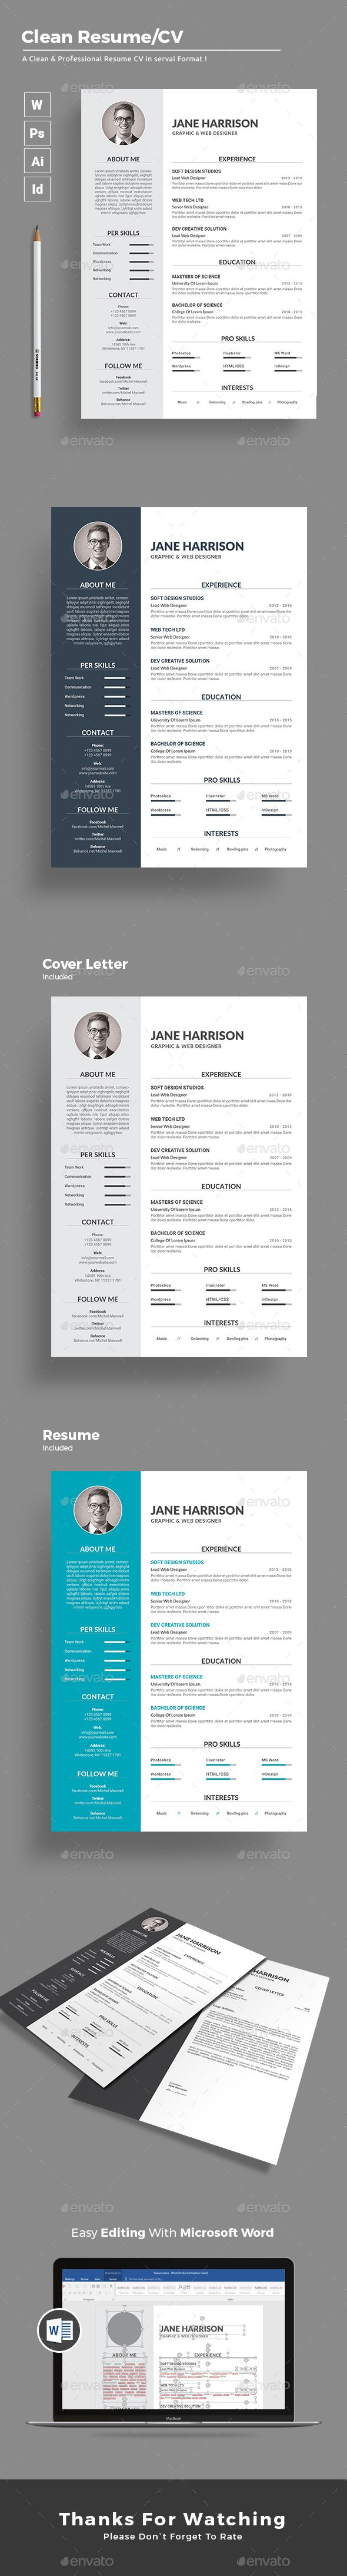 Resume Vita Excel  Best Images About Resumecv Word Template On Pinterest  Adobe  Should You Put References On A Resume with Fashion Designer Resume Resume Cv Template  Color Version Available In All Format  Photoshop  Illustrator Sample Administrative Resume Word